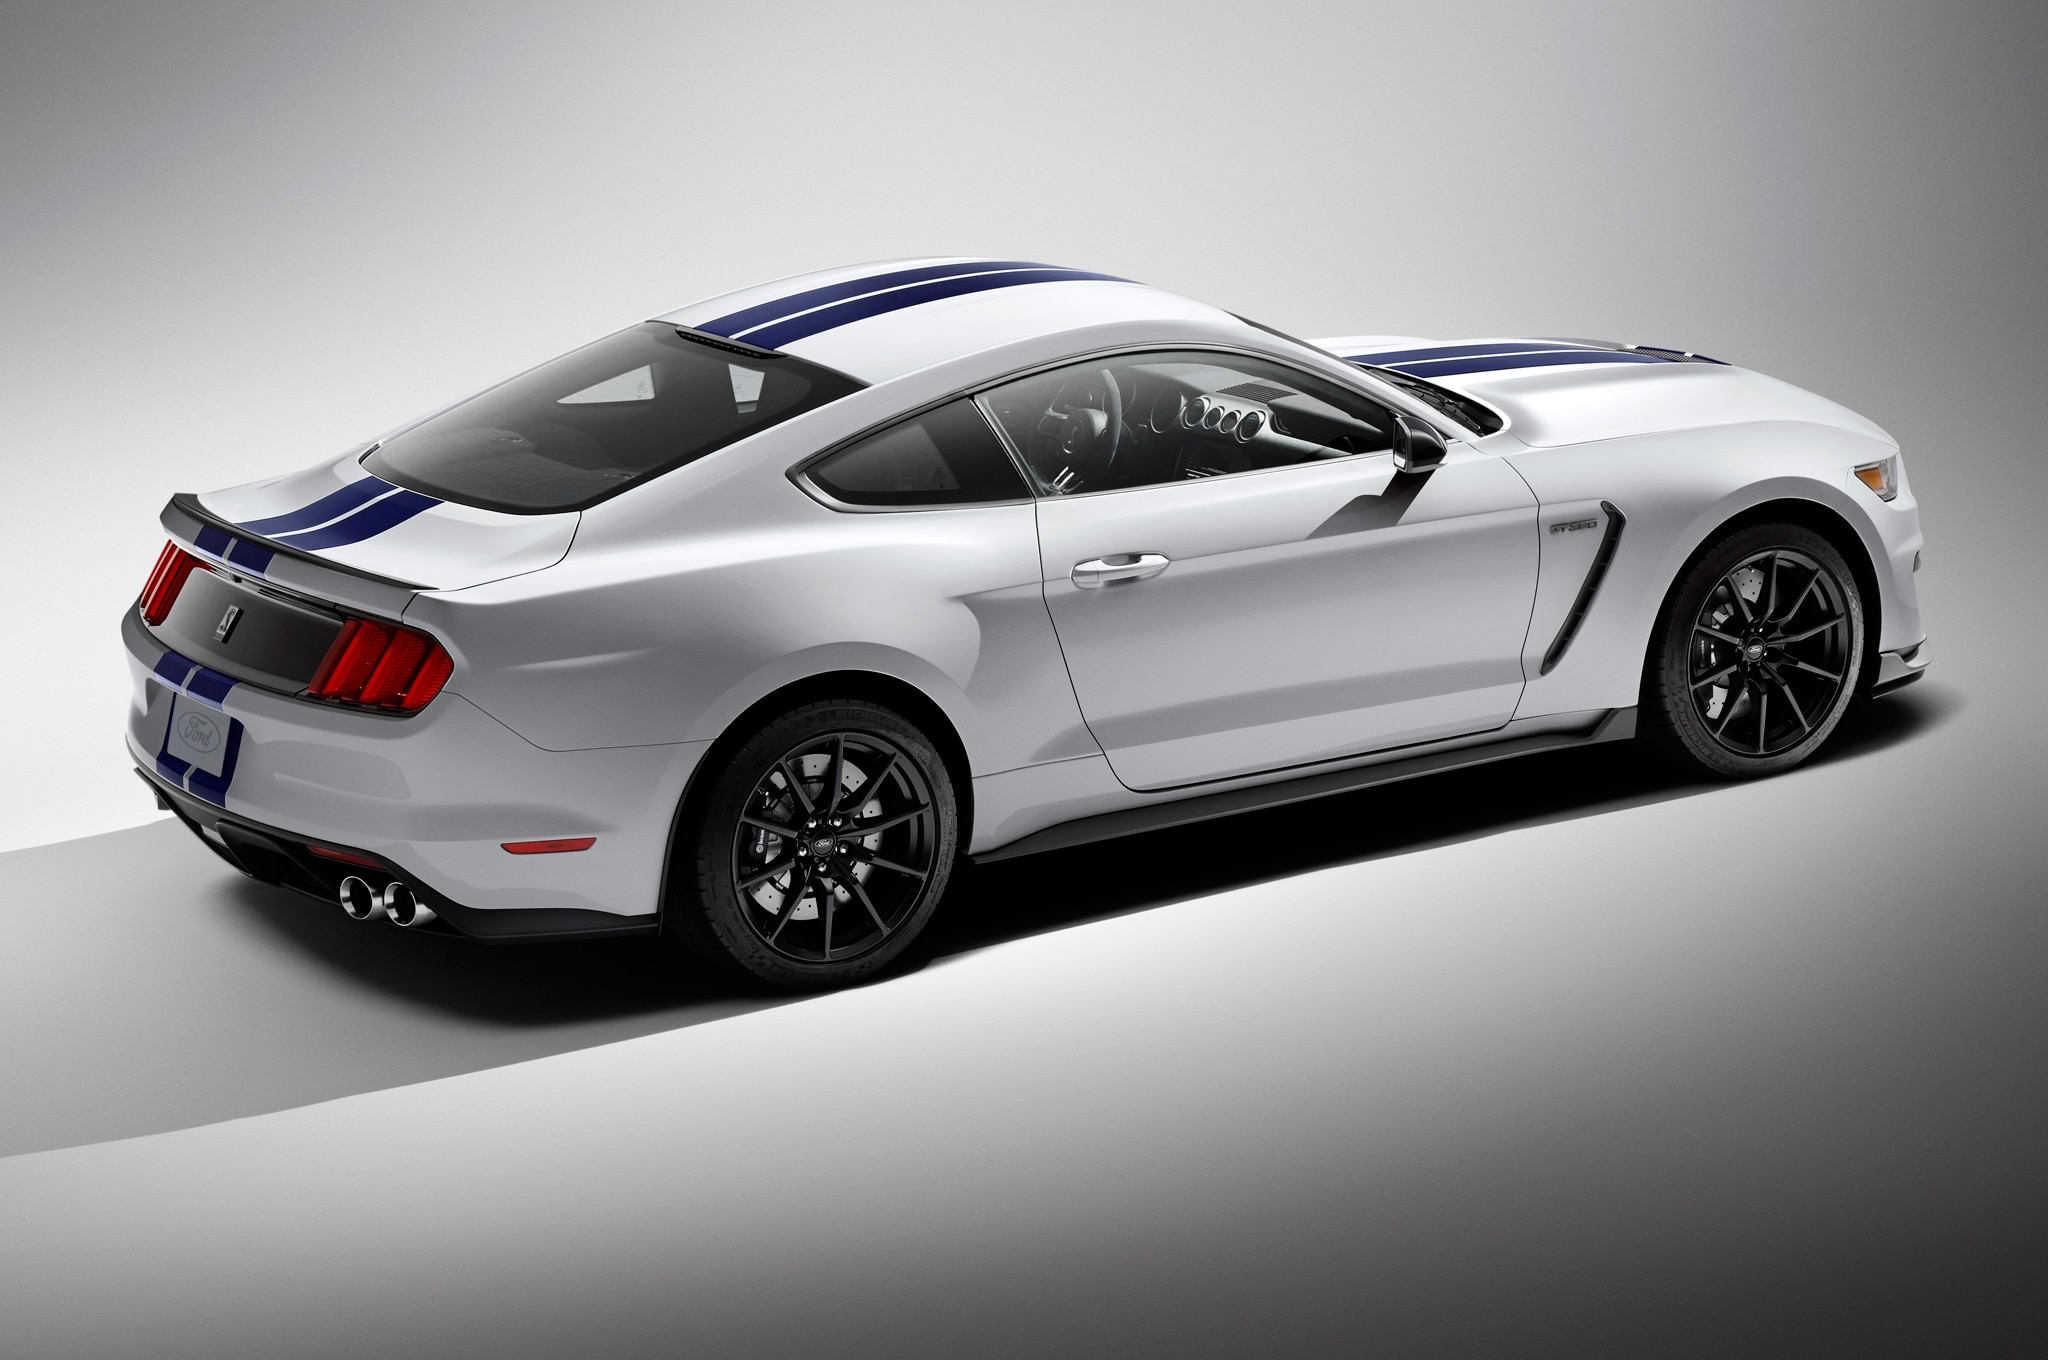 2016 Ford Shelby GT350 Mustang Chassis Detailed